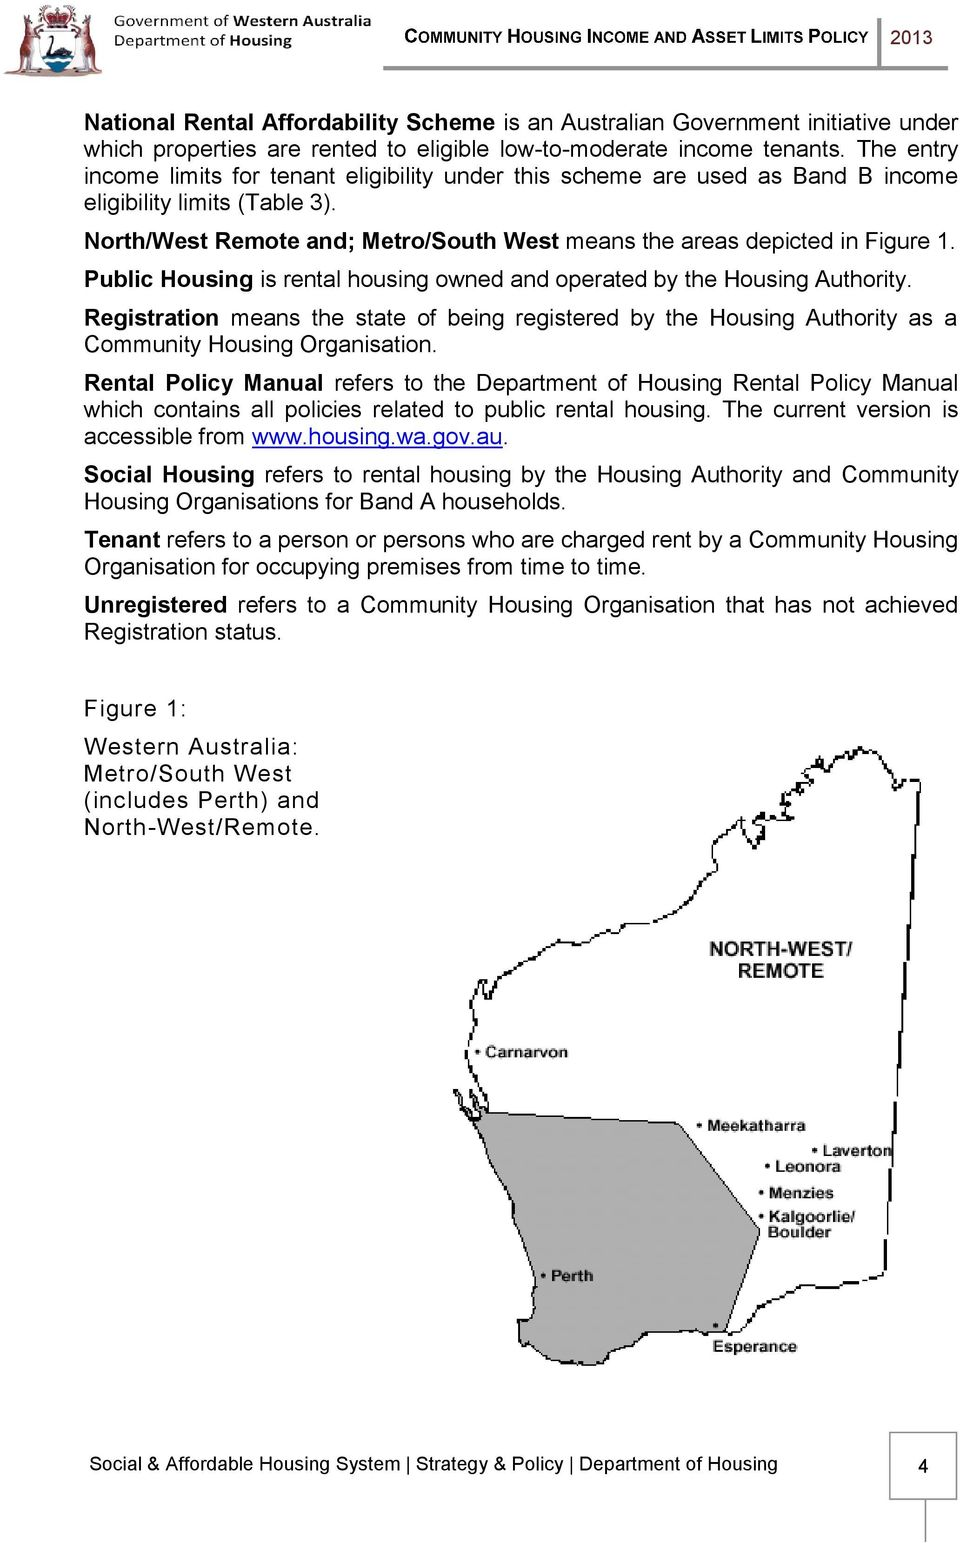 Public Housing is rental housing owned and operated by the Housing Authority. Registration means the state of being registered by the Housing Authority as a Community Housing Organisation.